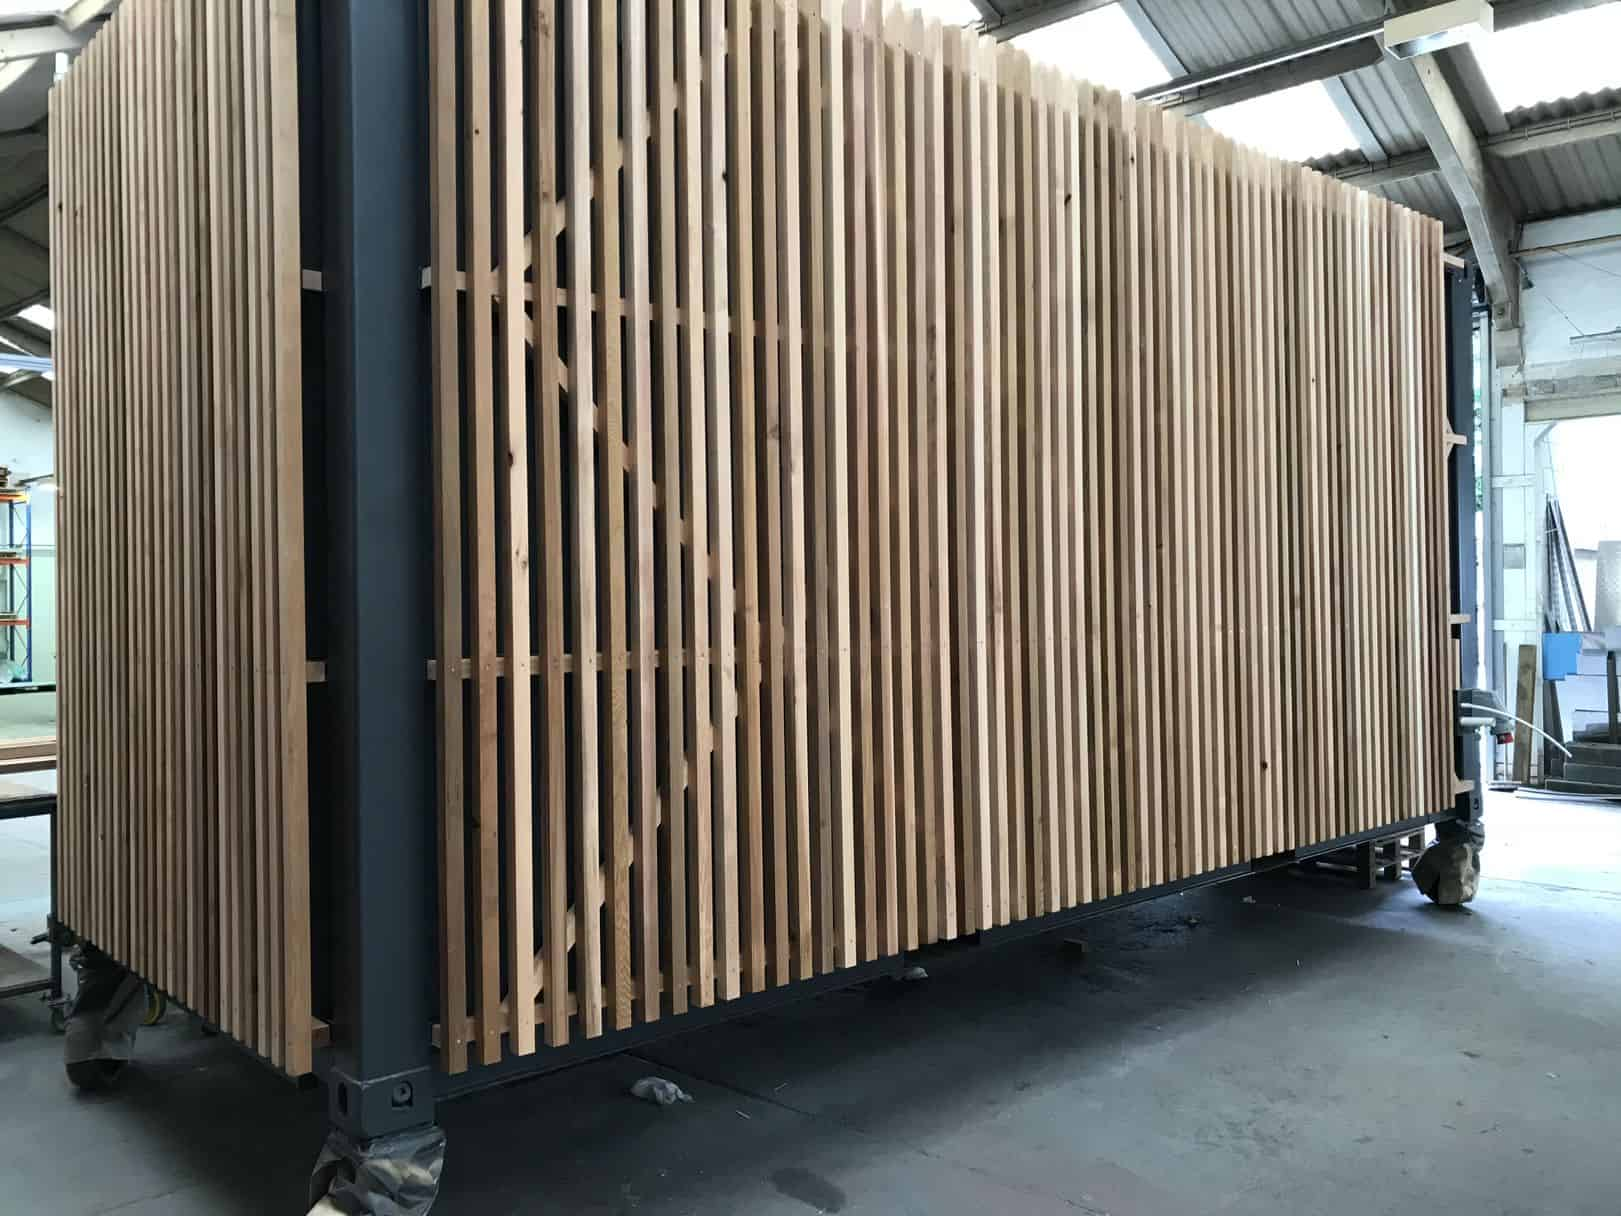 Cedar cladding on the side of a shipping container cafe conversion